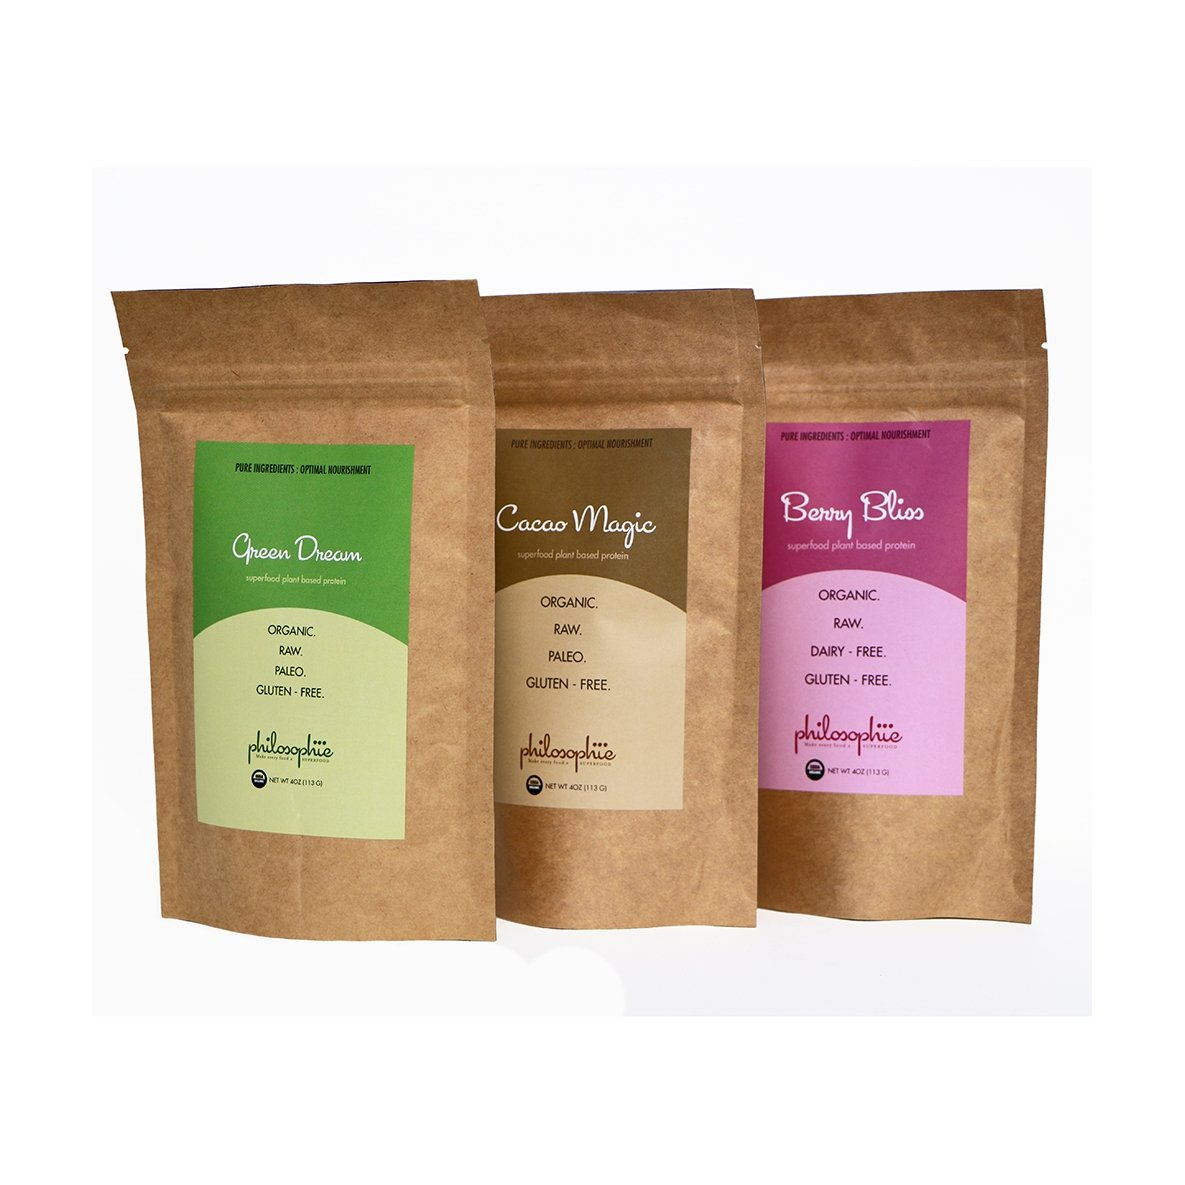 Philosophie Superfood Protein Powders Bundle keto protein vegan on SwitchGrocery Canada